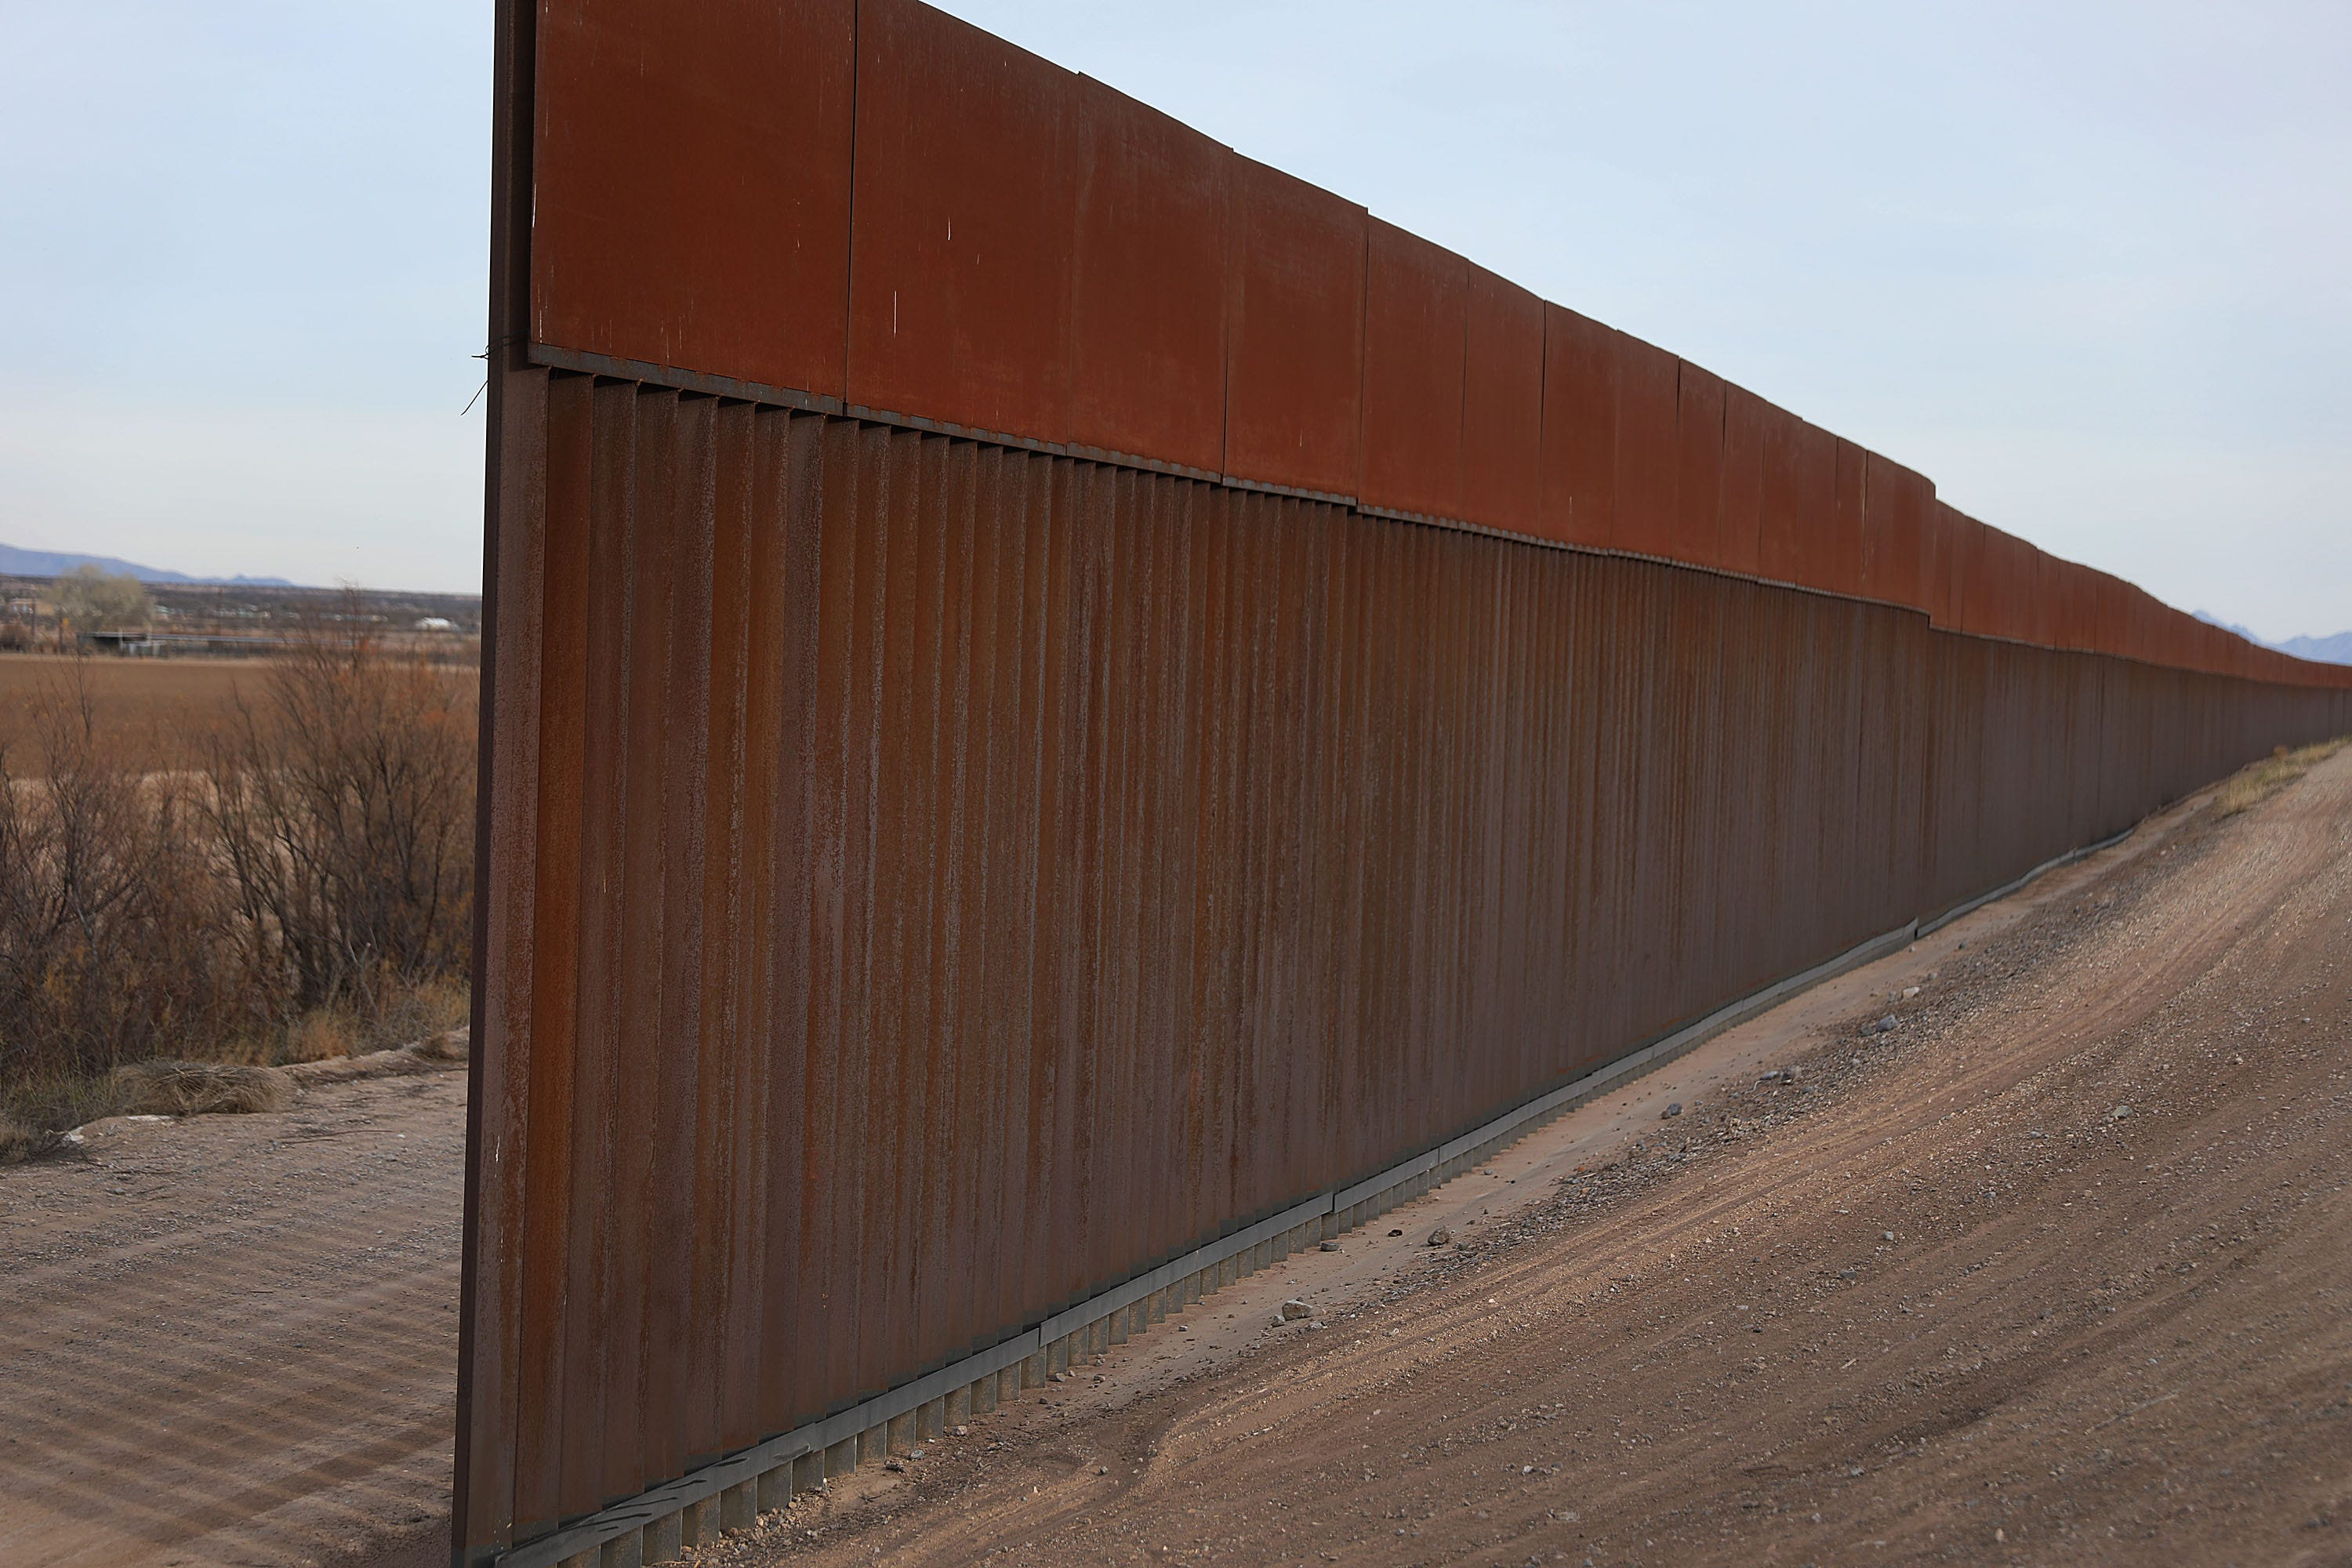 5 reasons Trump may want a shutdown that have nothing to do with a wall